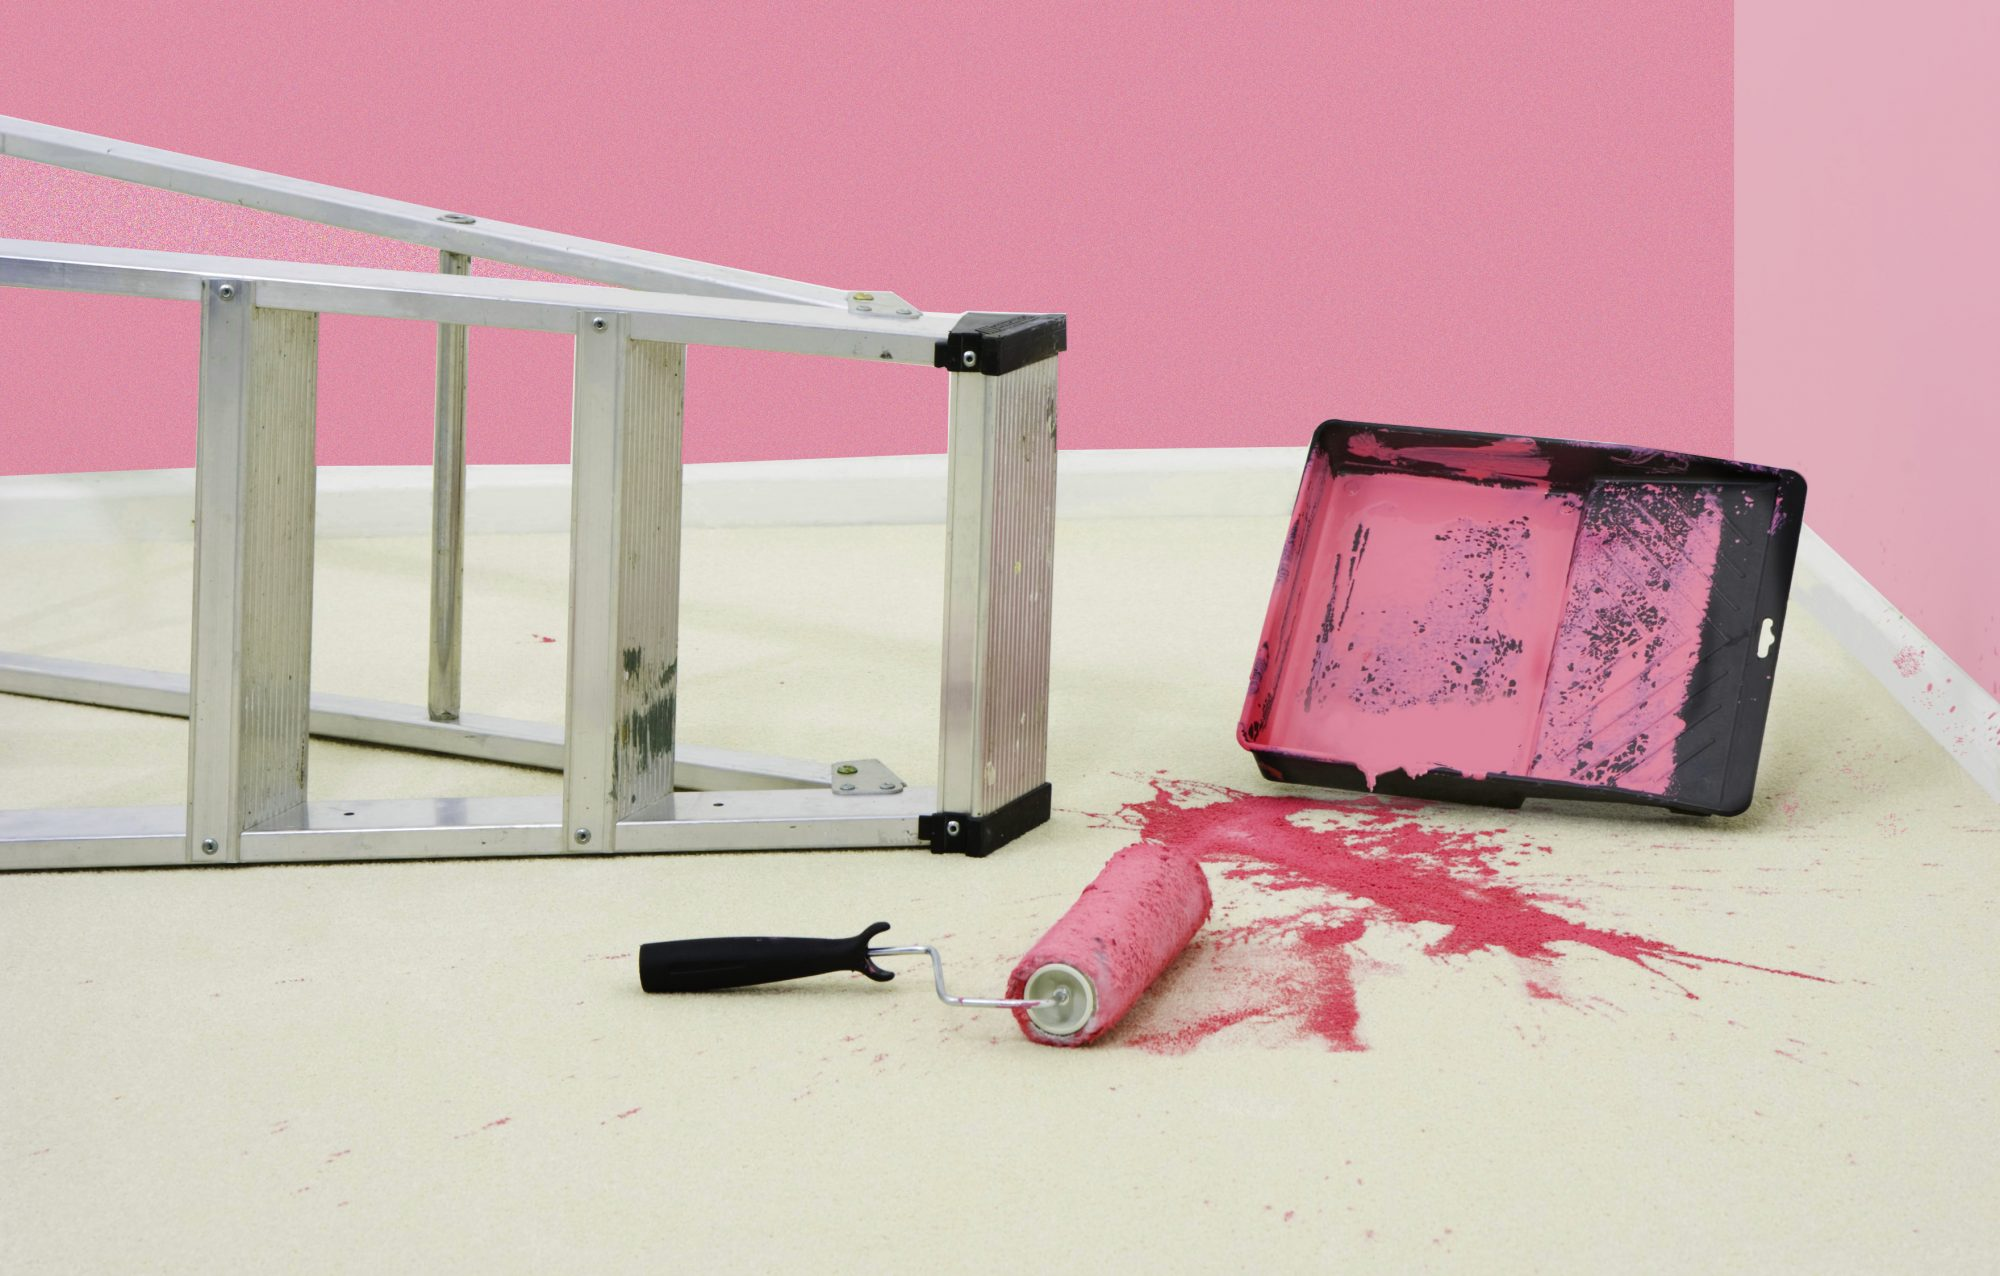 How to Get Paint Out of Carpet, pink paint on carpet